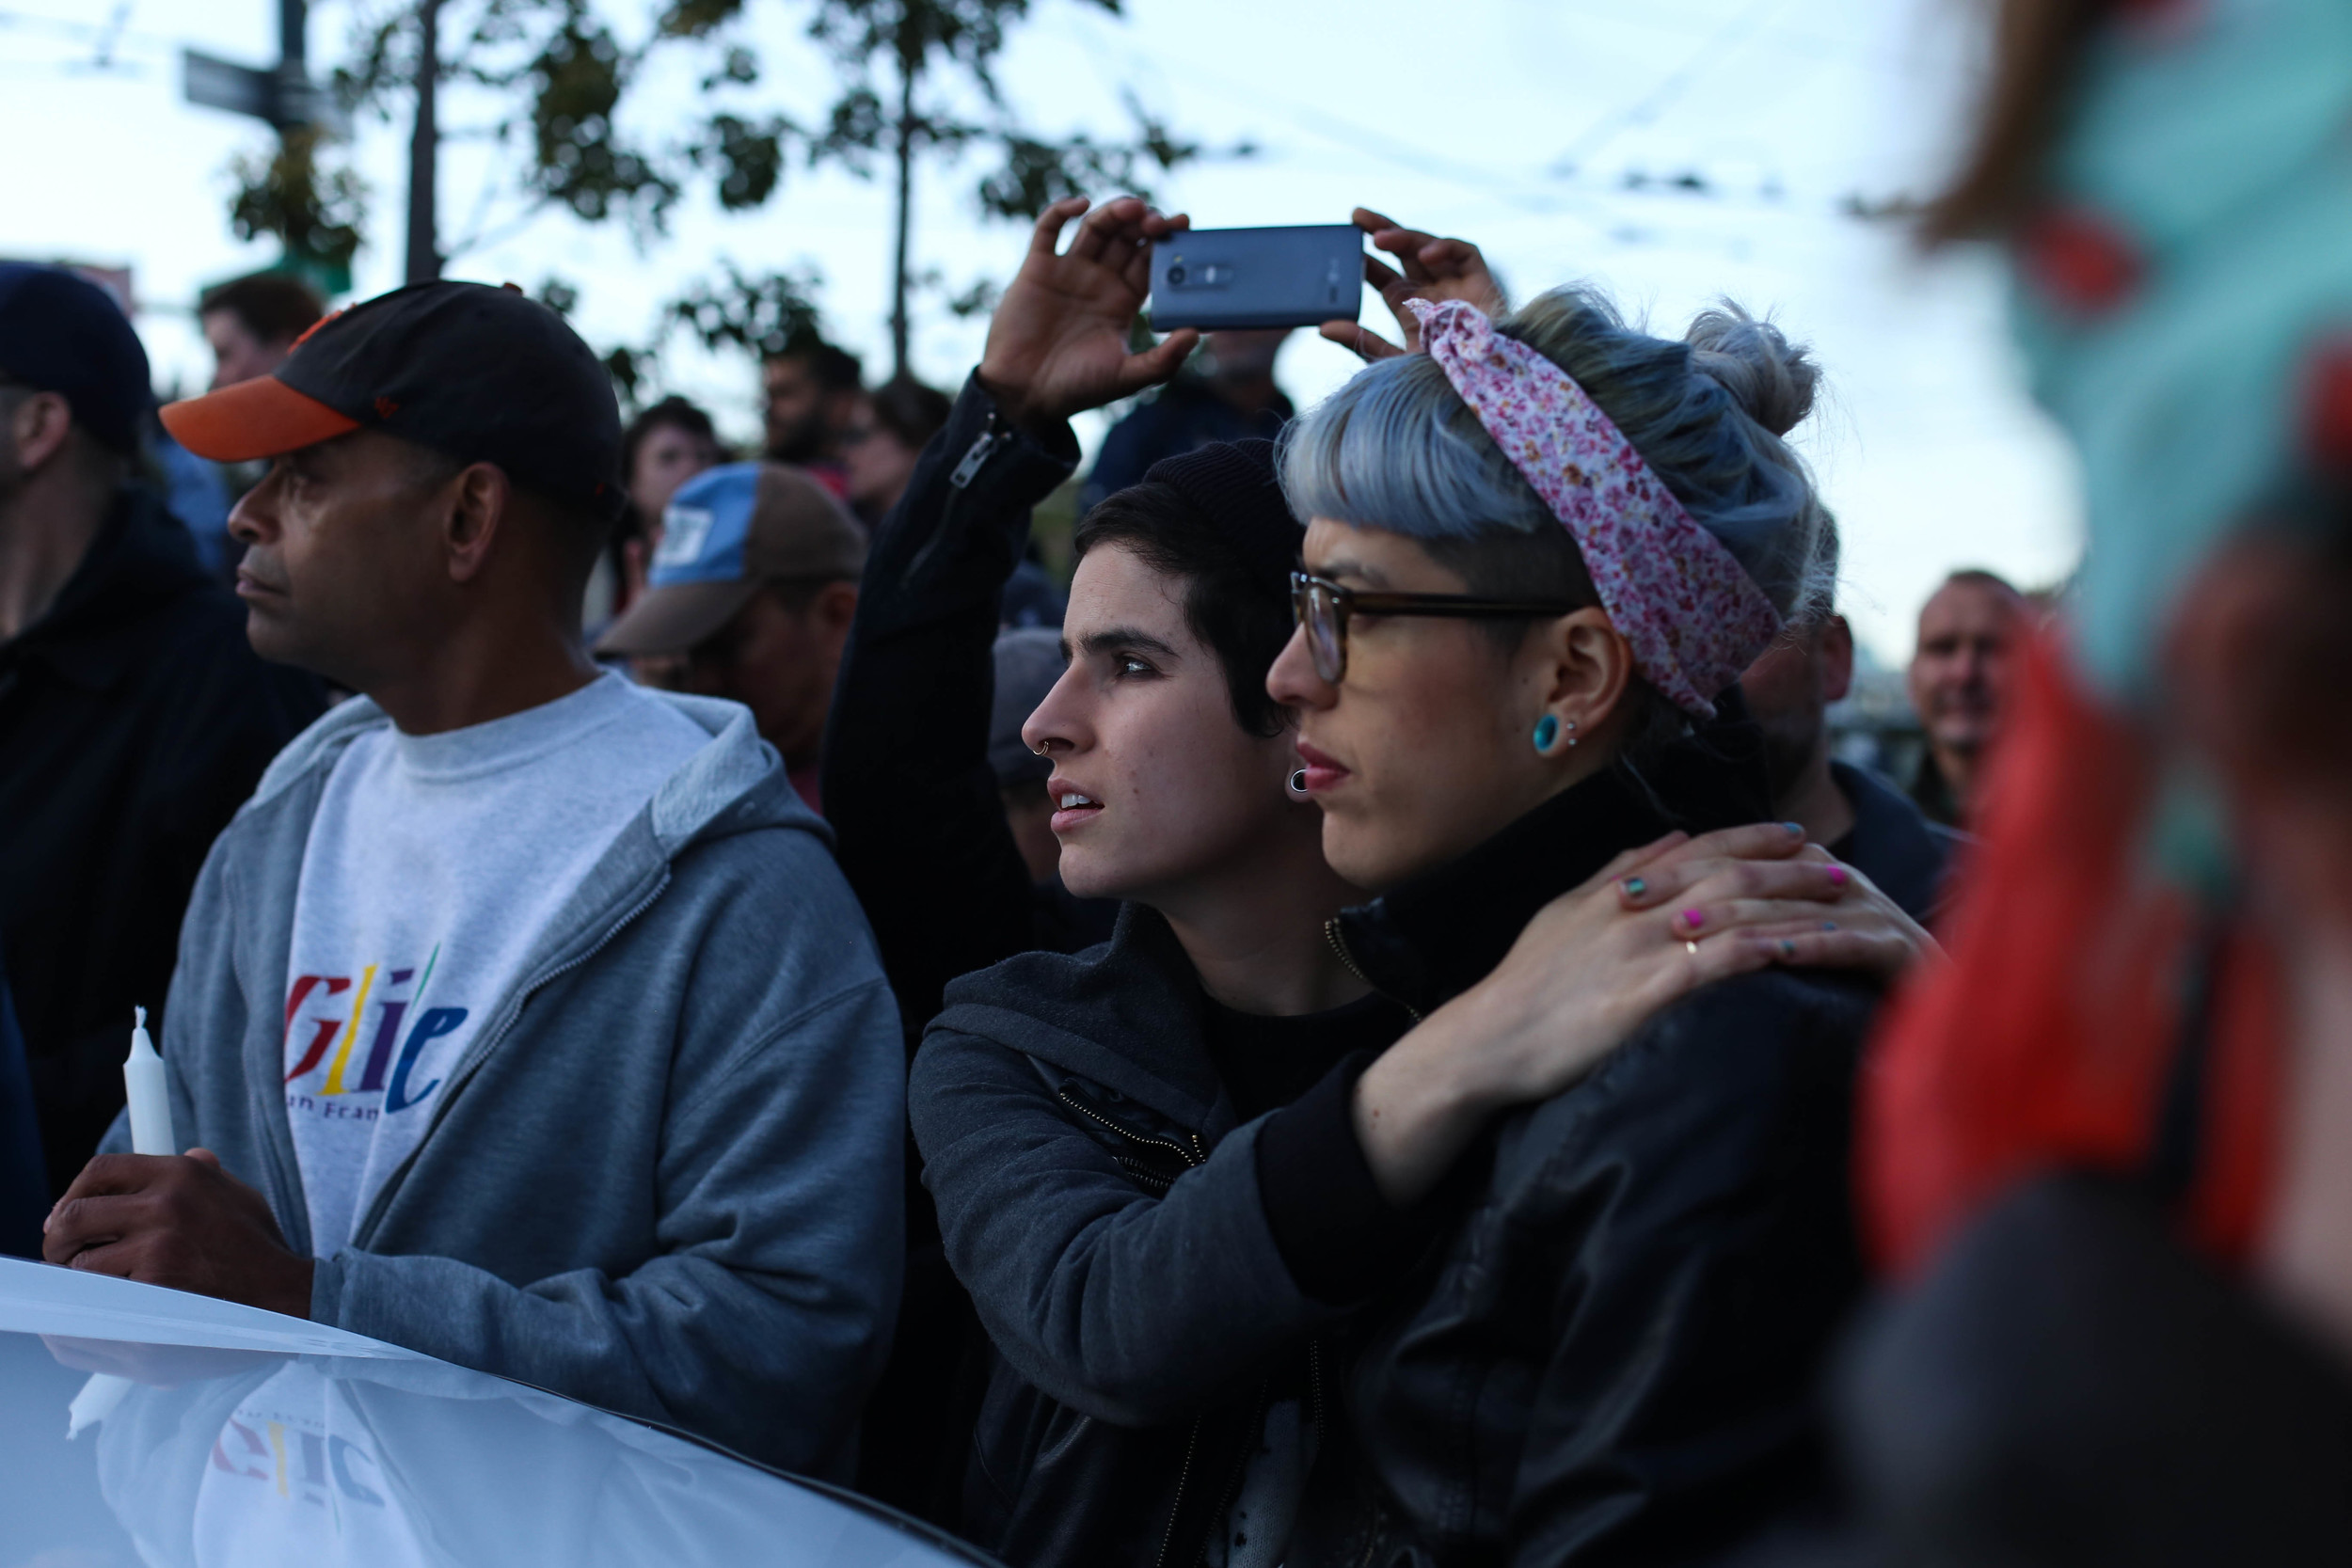 Laura Ceron & Juliana Delgado look towards the speakers during a vigil in Harvey Milk Plaza to remember the victims of the Orlando shooting.